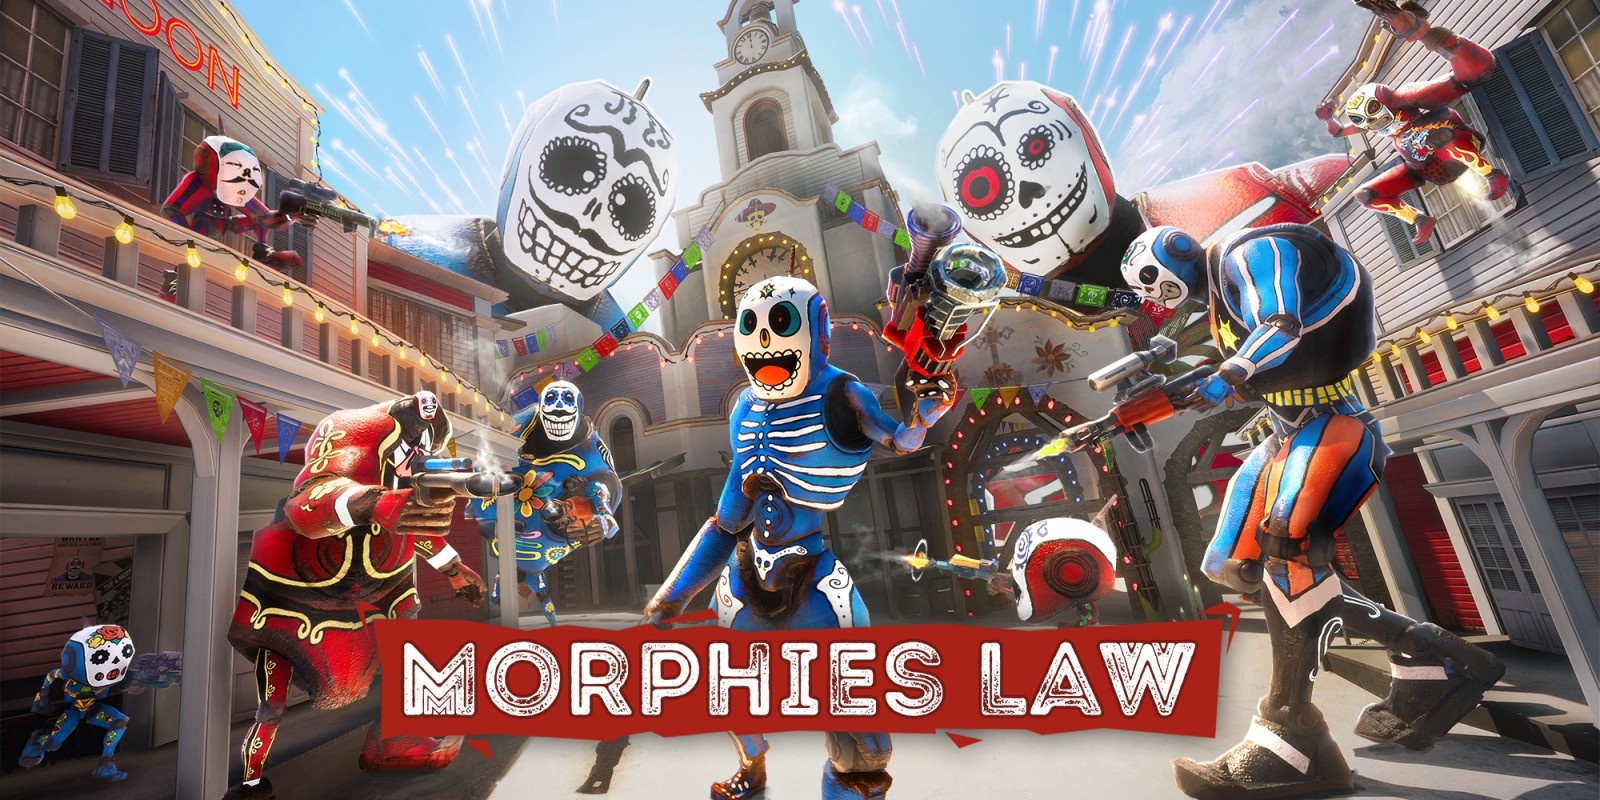 Upcoming Morphies Law Patch 2.0 features